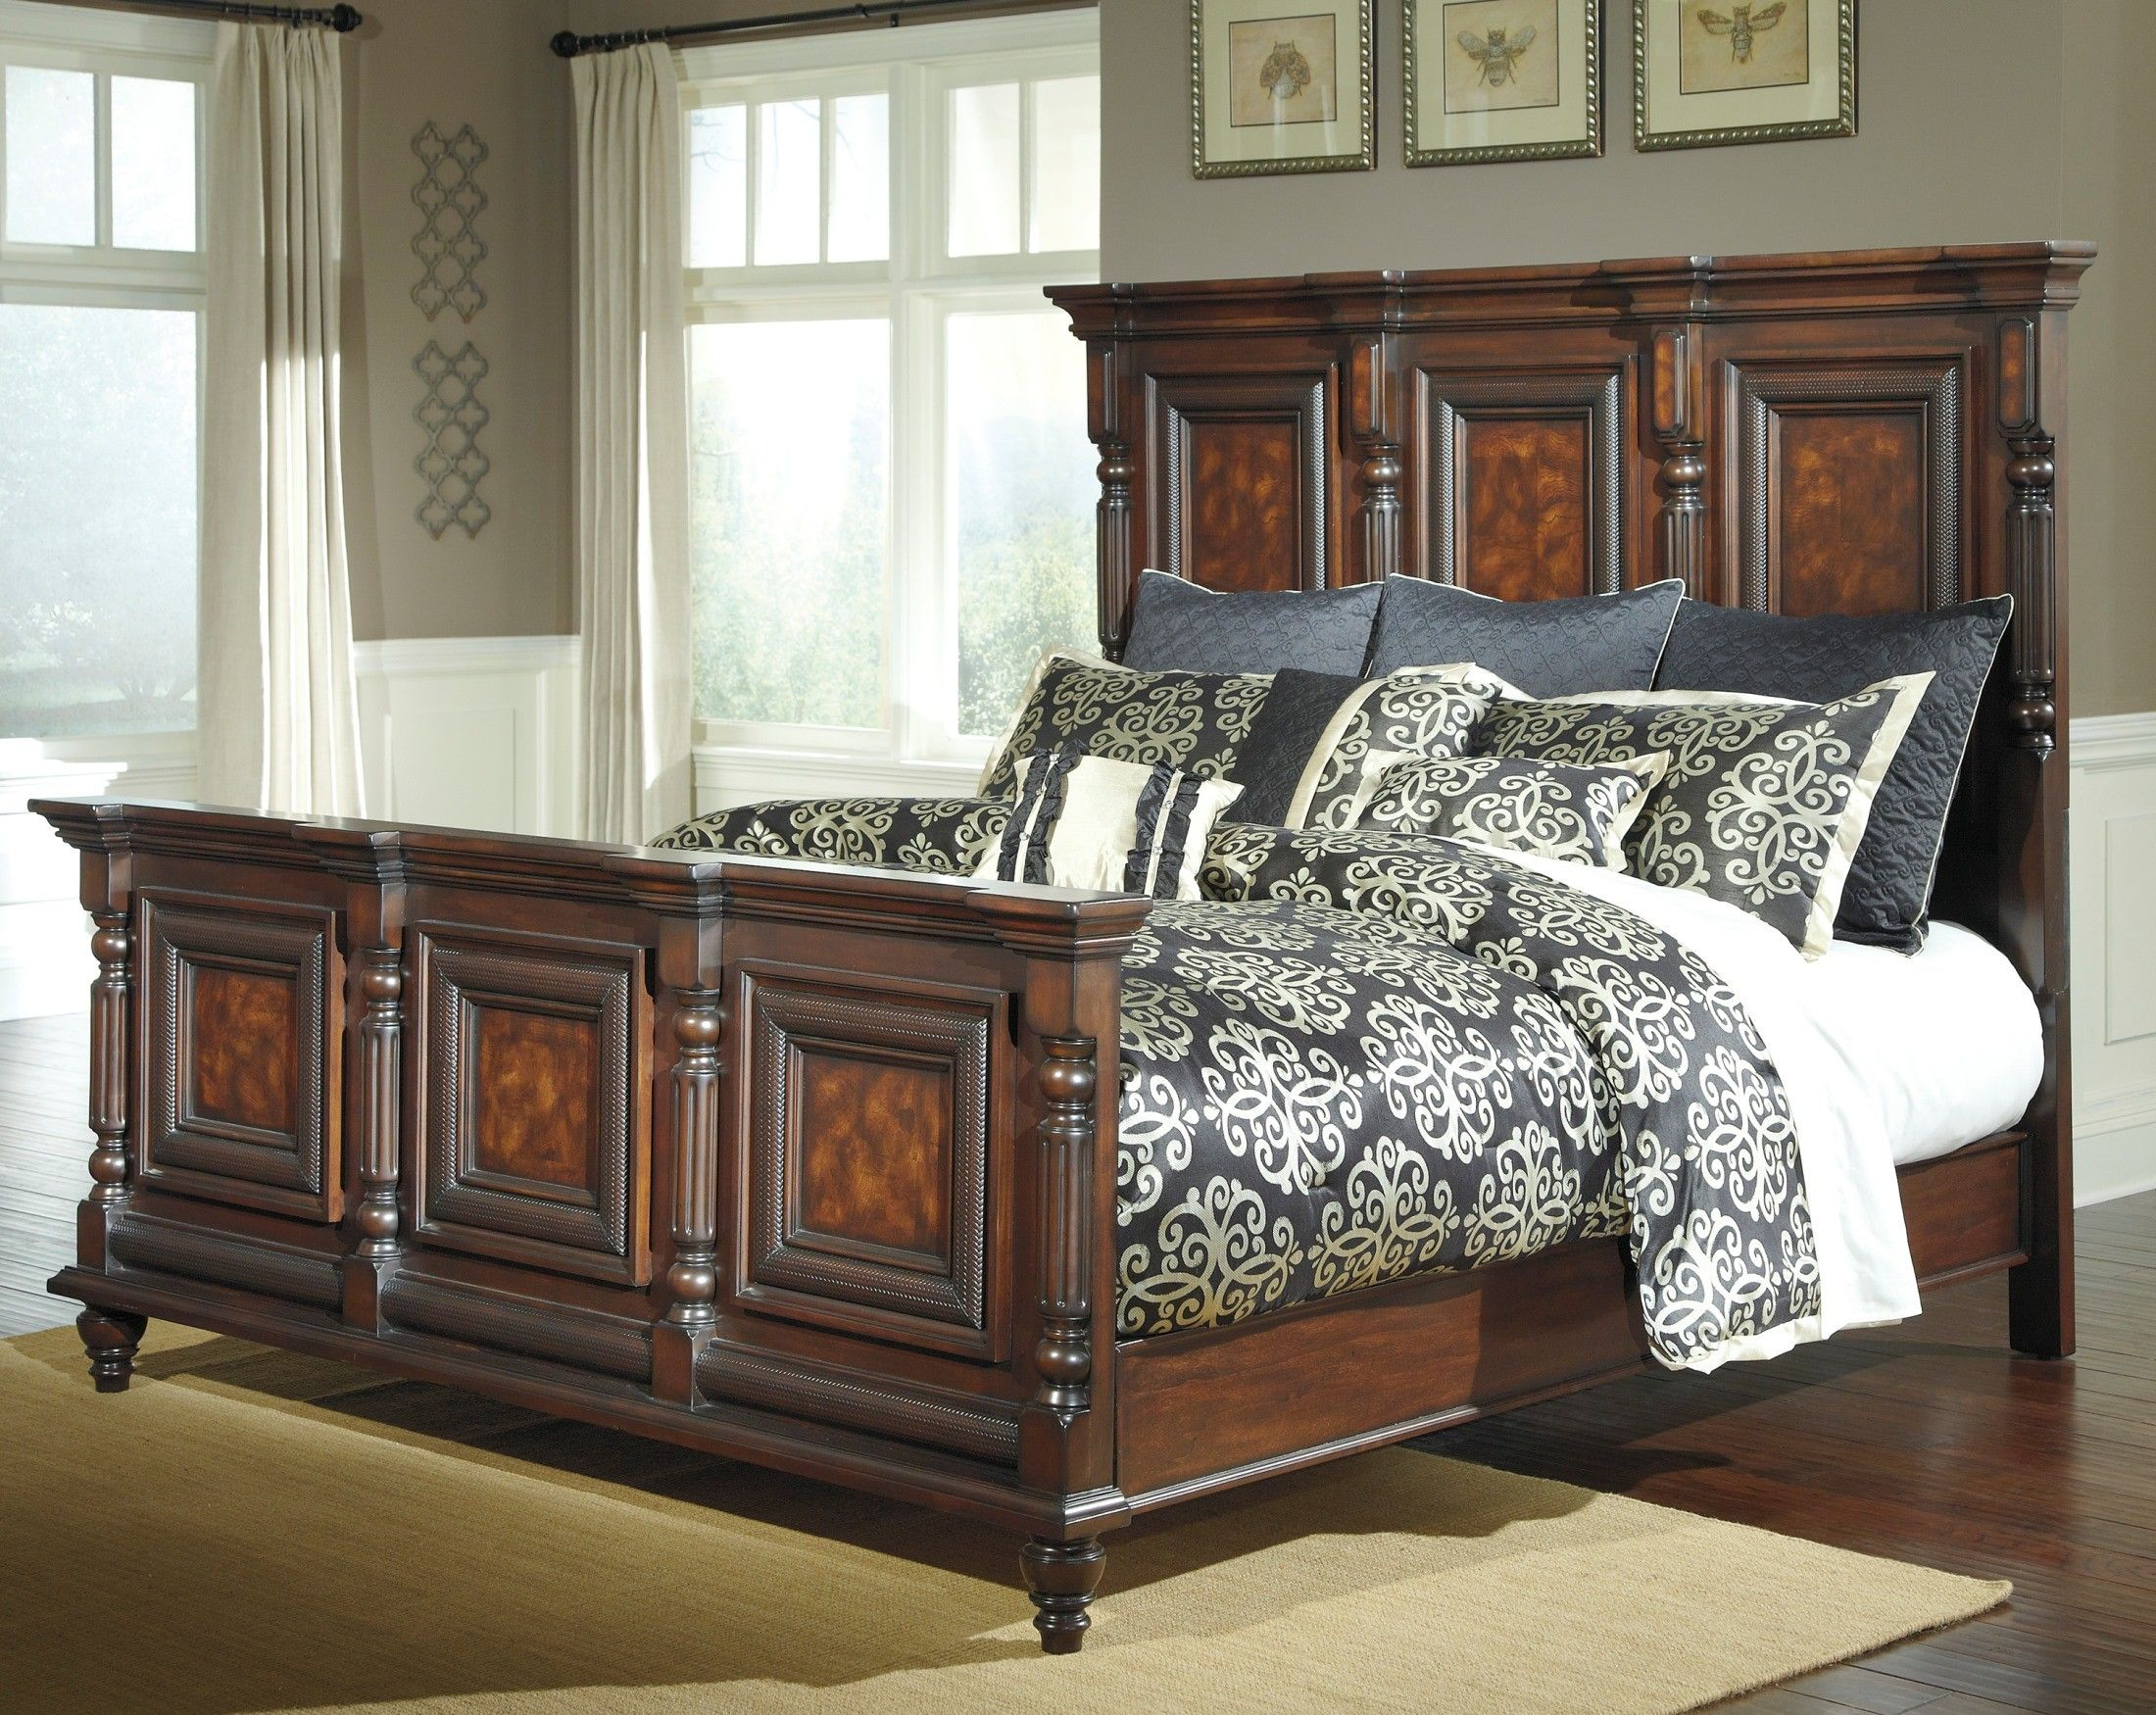 Key Town Bedroom Set on key town kitchen, key town furniture set, key town armoire, key town buffet, key town console, key town mansion, key town armchair, key town poster bedroom, key town dining set, key town headboard, key town bench, key town dining room chair,